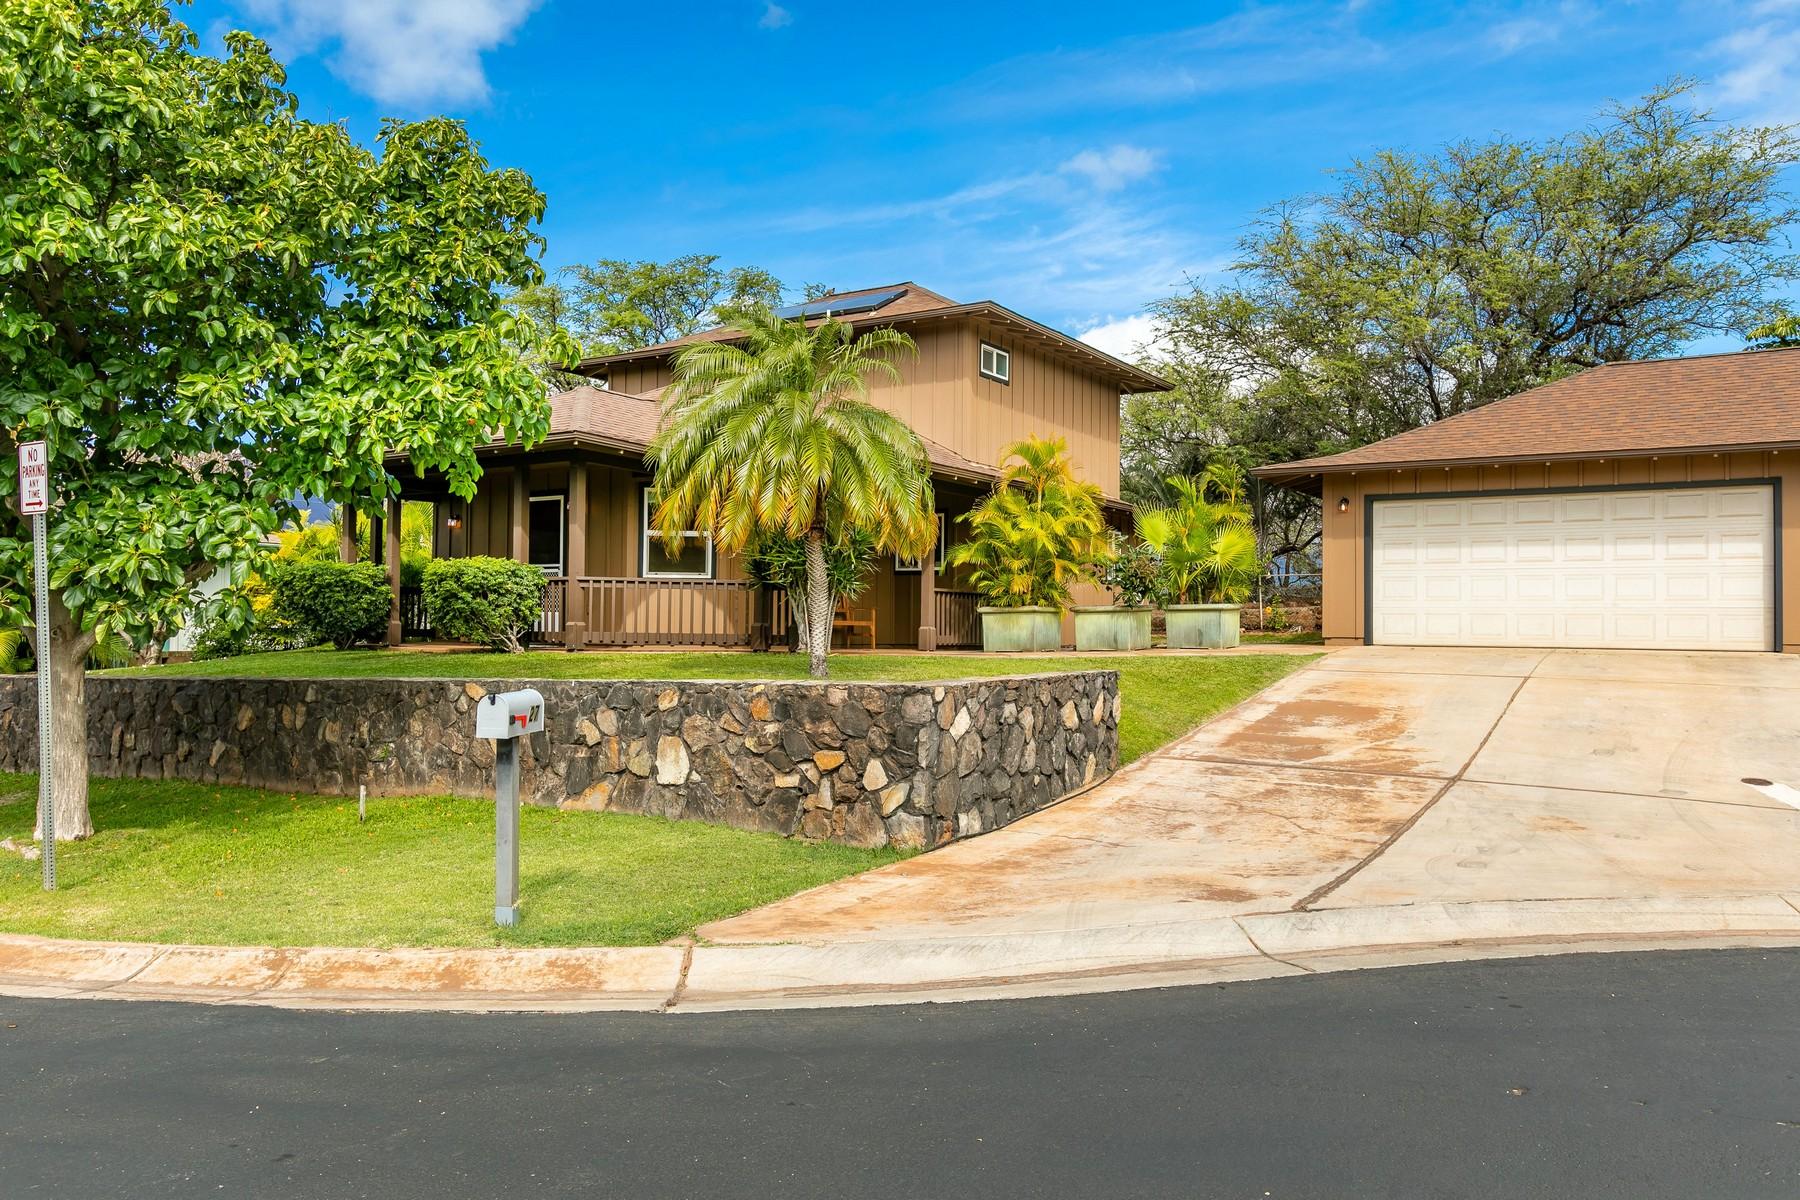 Single Family Home for Active at Maui's South Shore, Residential Home on Intimate Cul de Sac 27 Hooiki Place Kihei, Hawaii 96753 United States